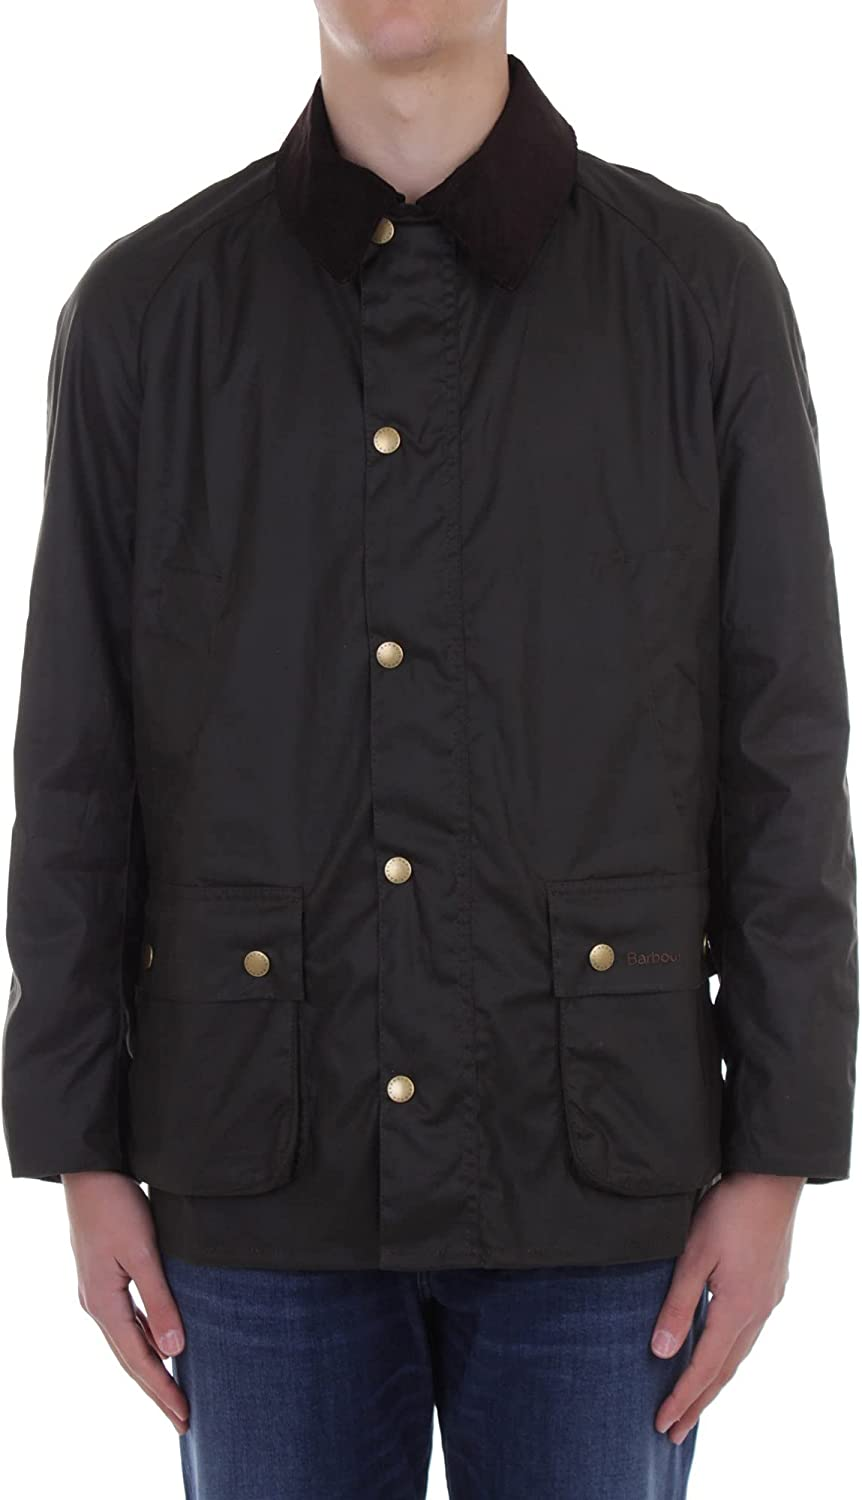 Barbour Chaqueta Casual - Ashby